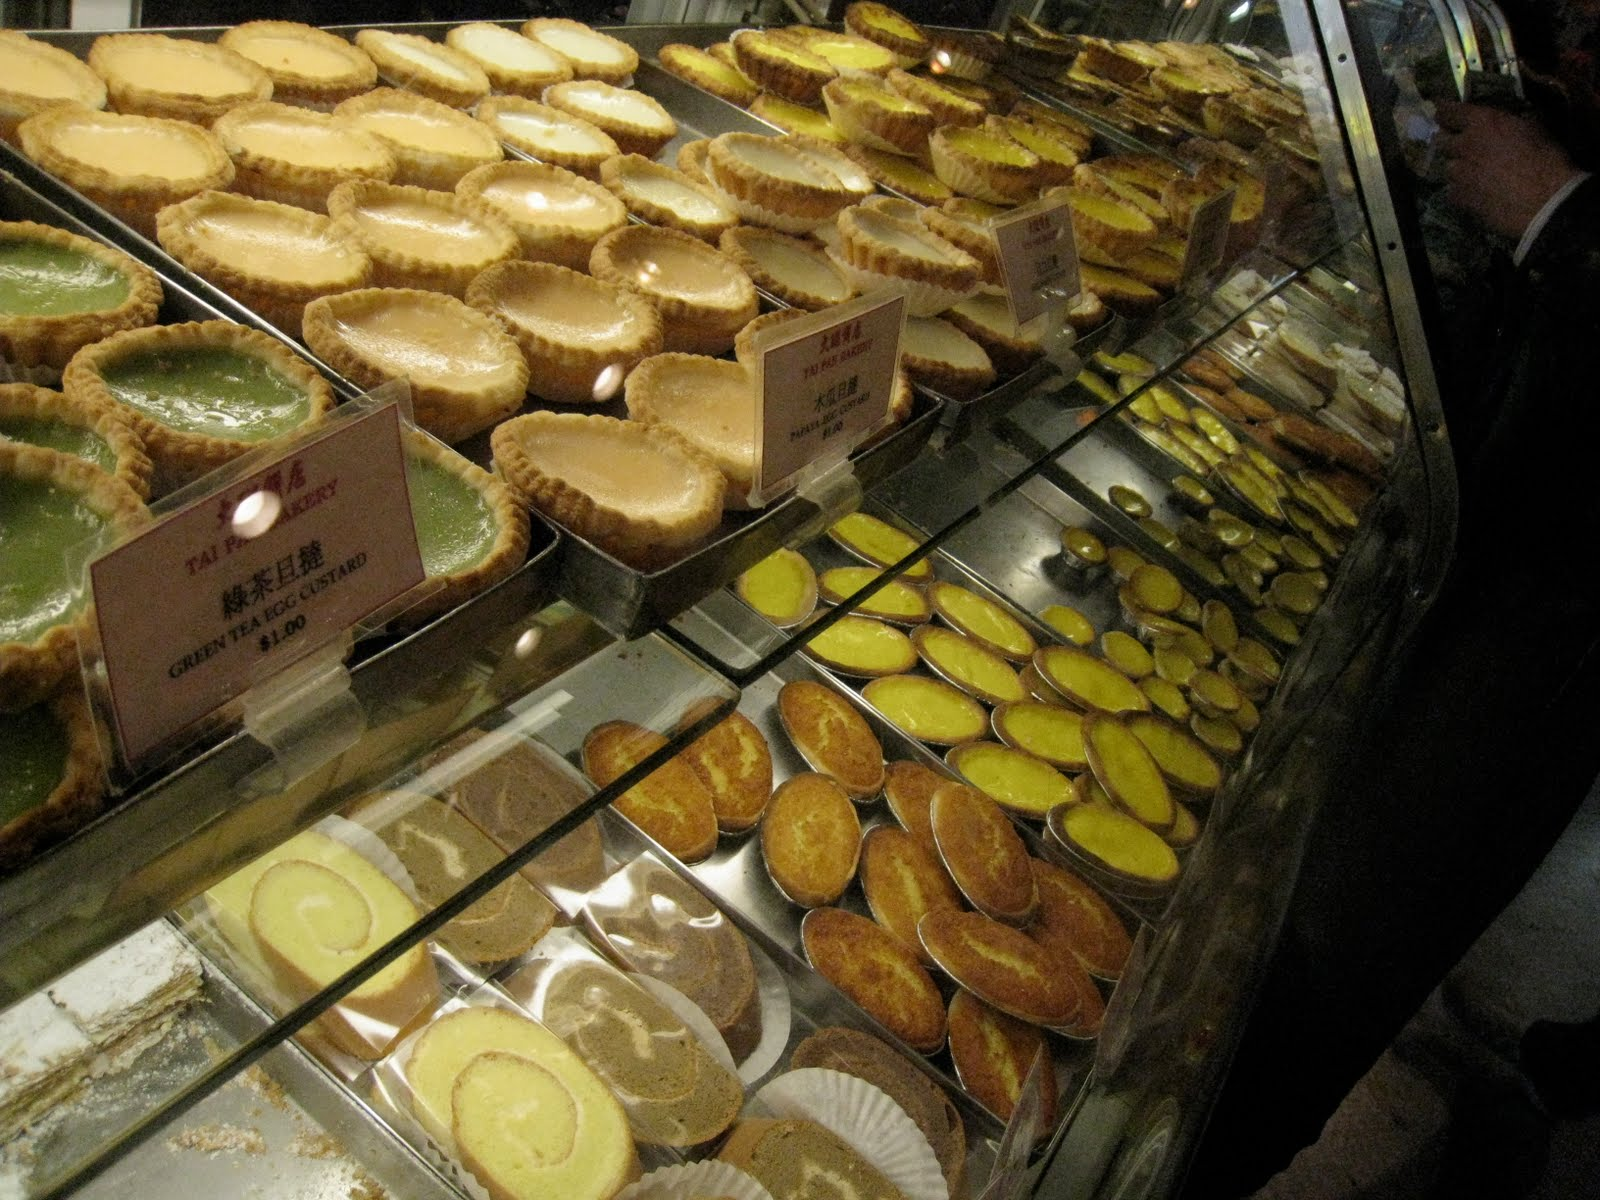 Oven Proof: Bread I like: Tai Pan Bakery in Chinatown